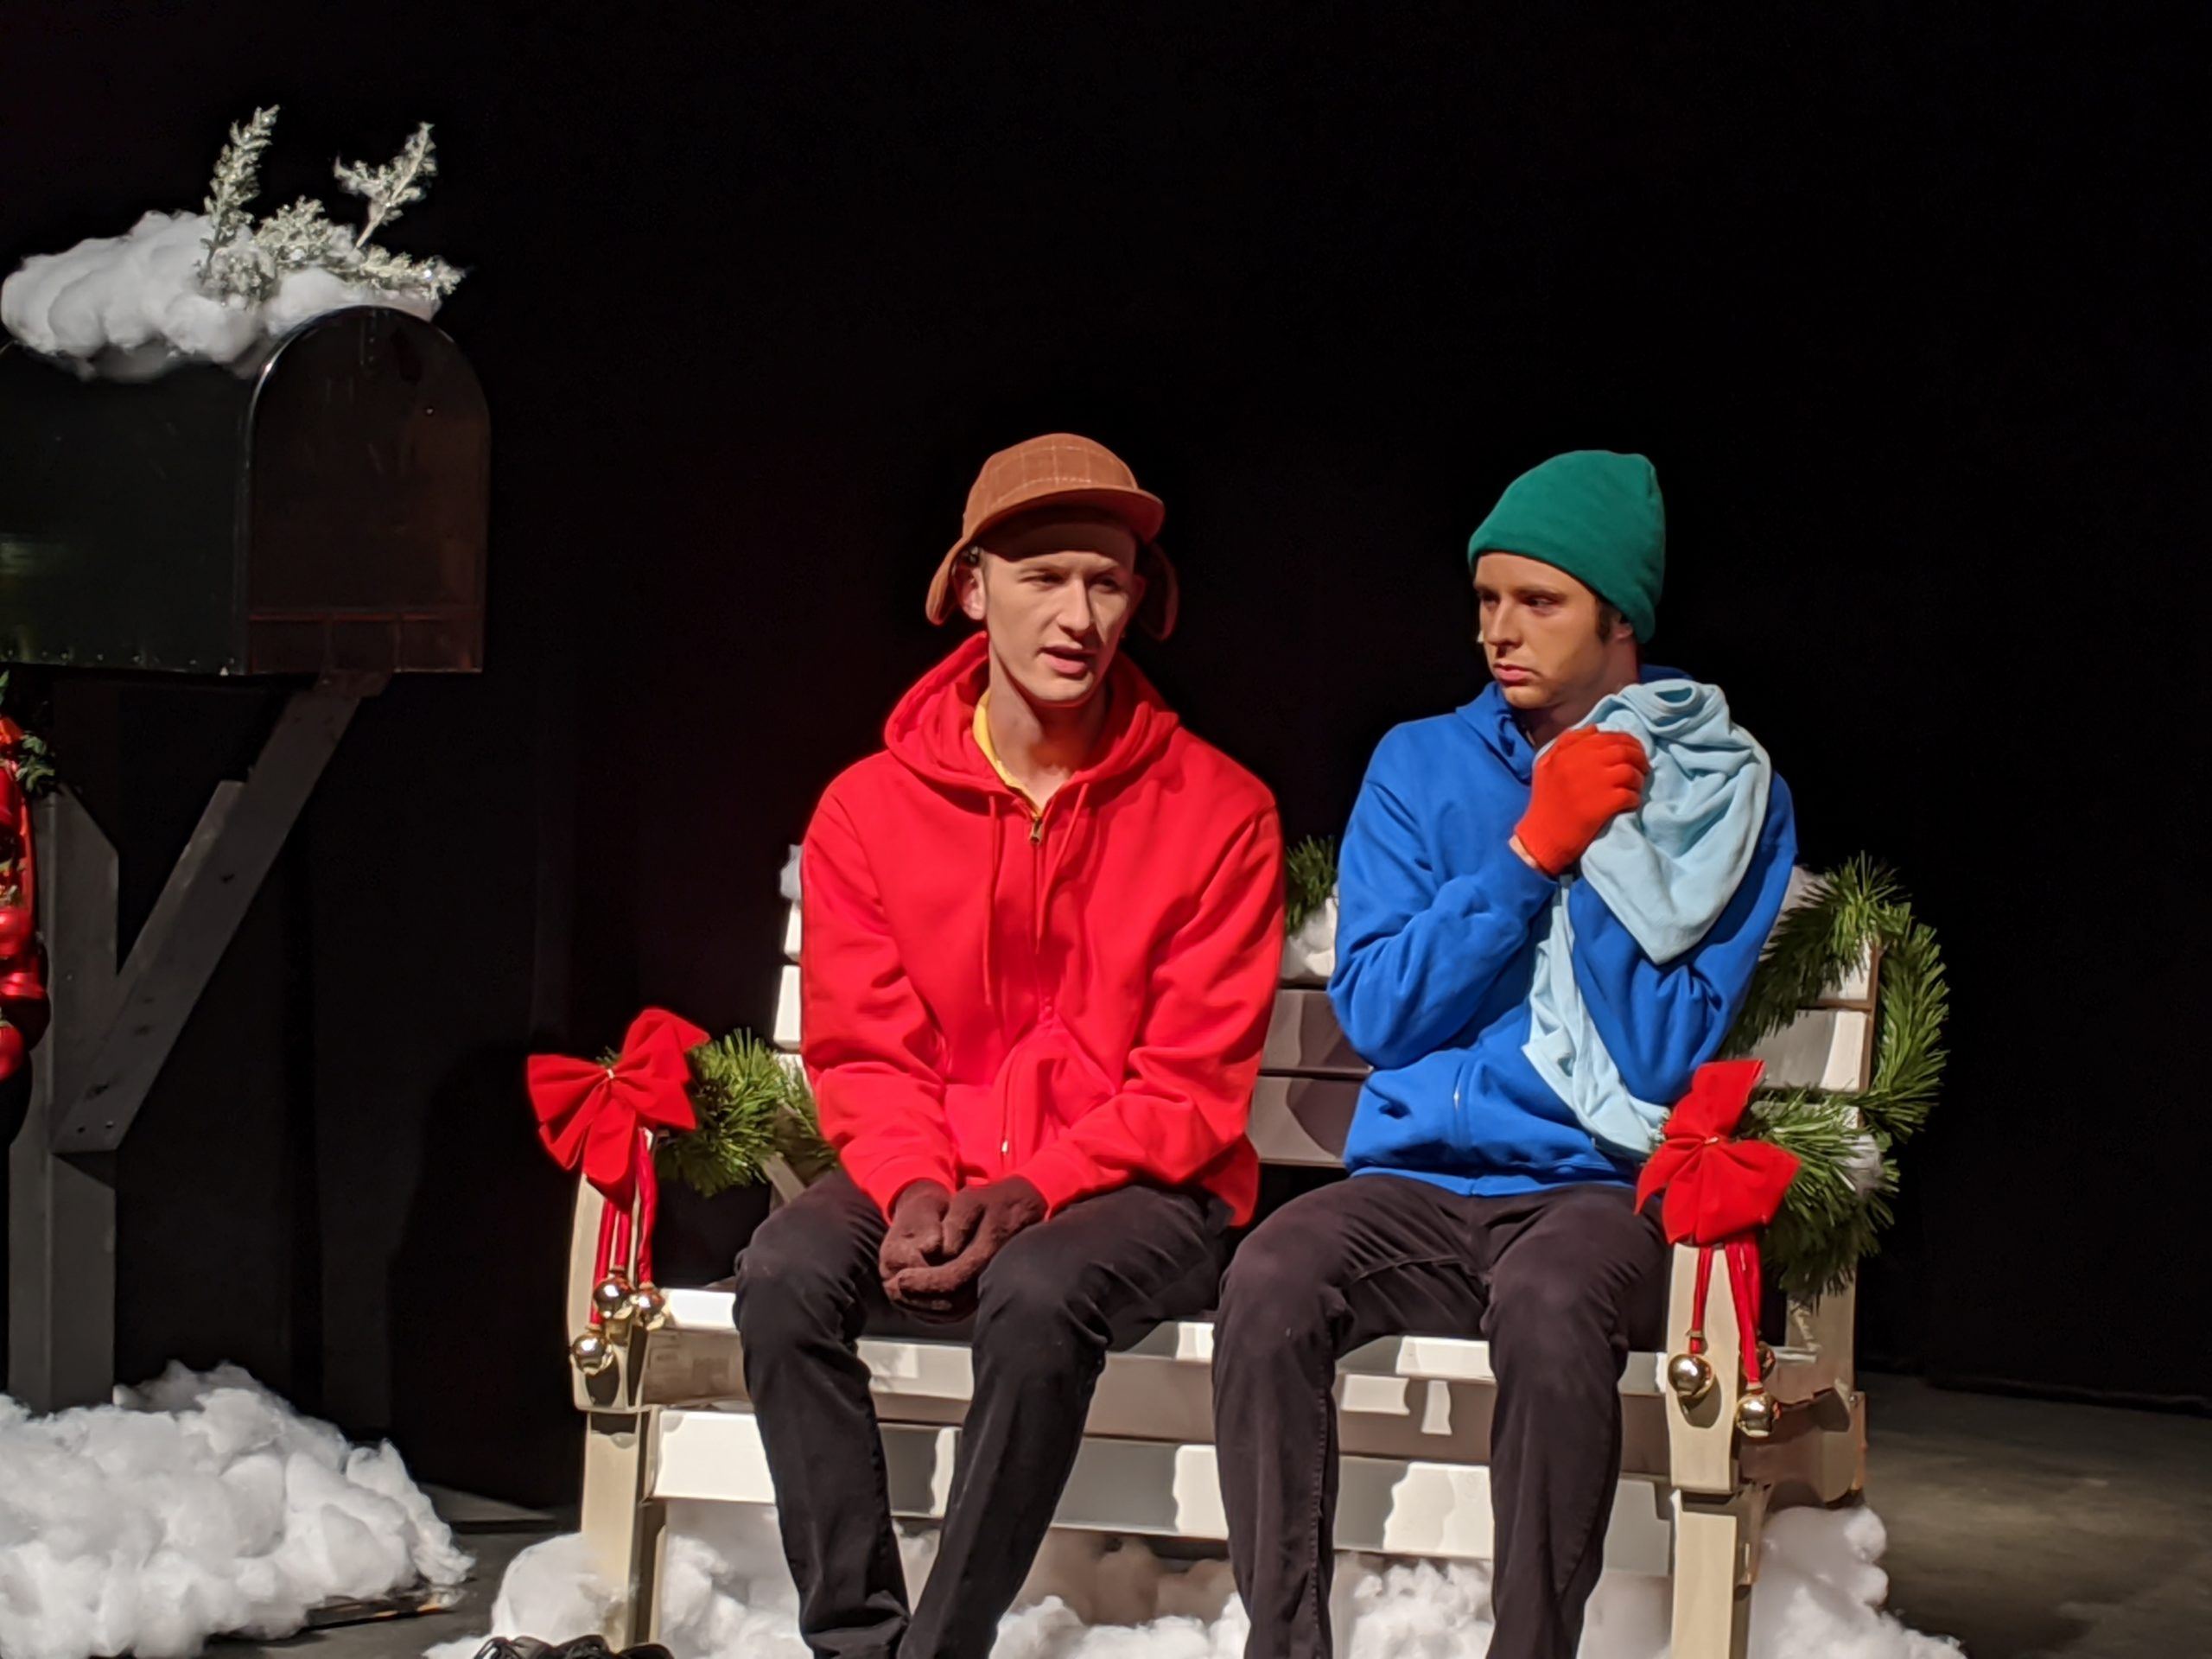 Nick MacFarlane as Charlie Brown and Trevor Nordike as Linus in Prince William Little Theatre's production of 'A Charlie Brown Christmas.' Photo by Melissa Jo York-Tilley.